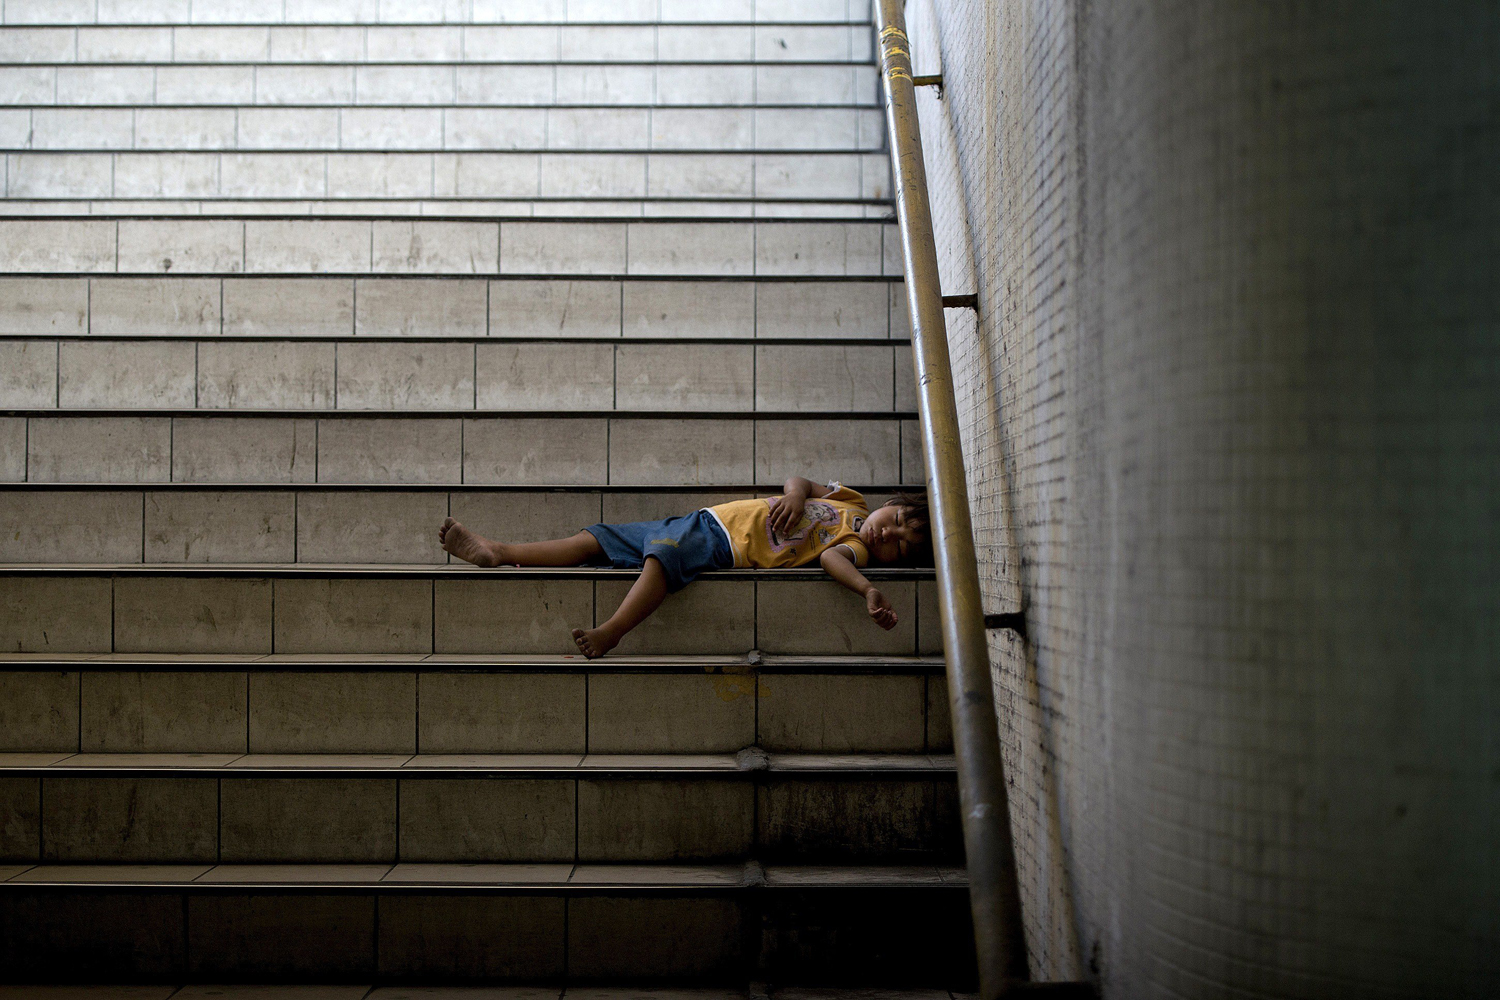 Jun. 25, 2014.                               A child sleeps on the steps of an underpass in Manila. The Philippines' roaring economy cooled in the first quarter of the year as the impacts of Super Typhoon Haiyan and other natural disasters hit harder than expected, official data showed.